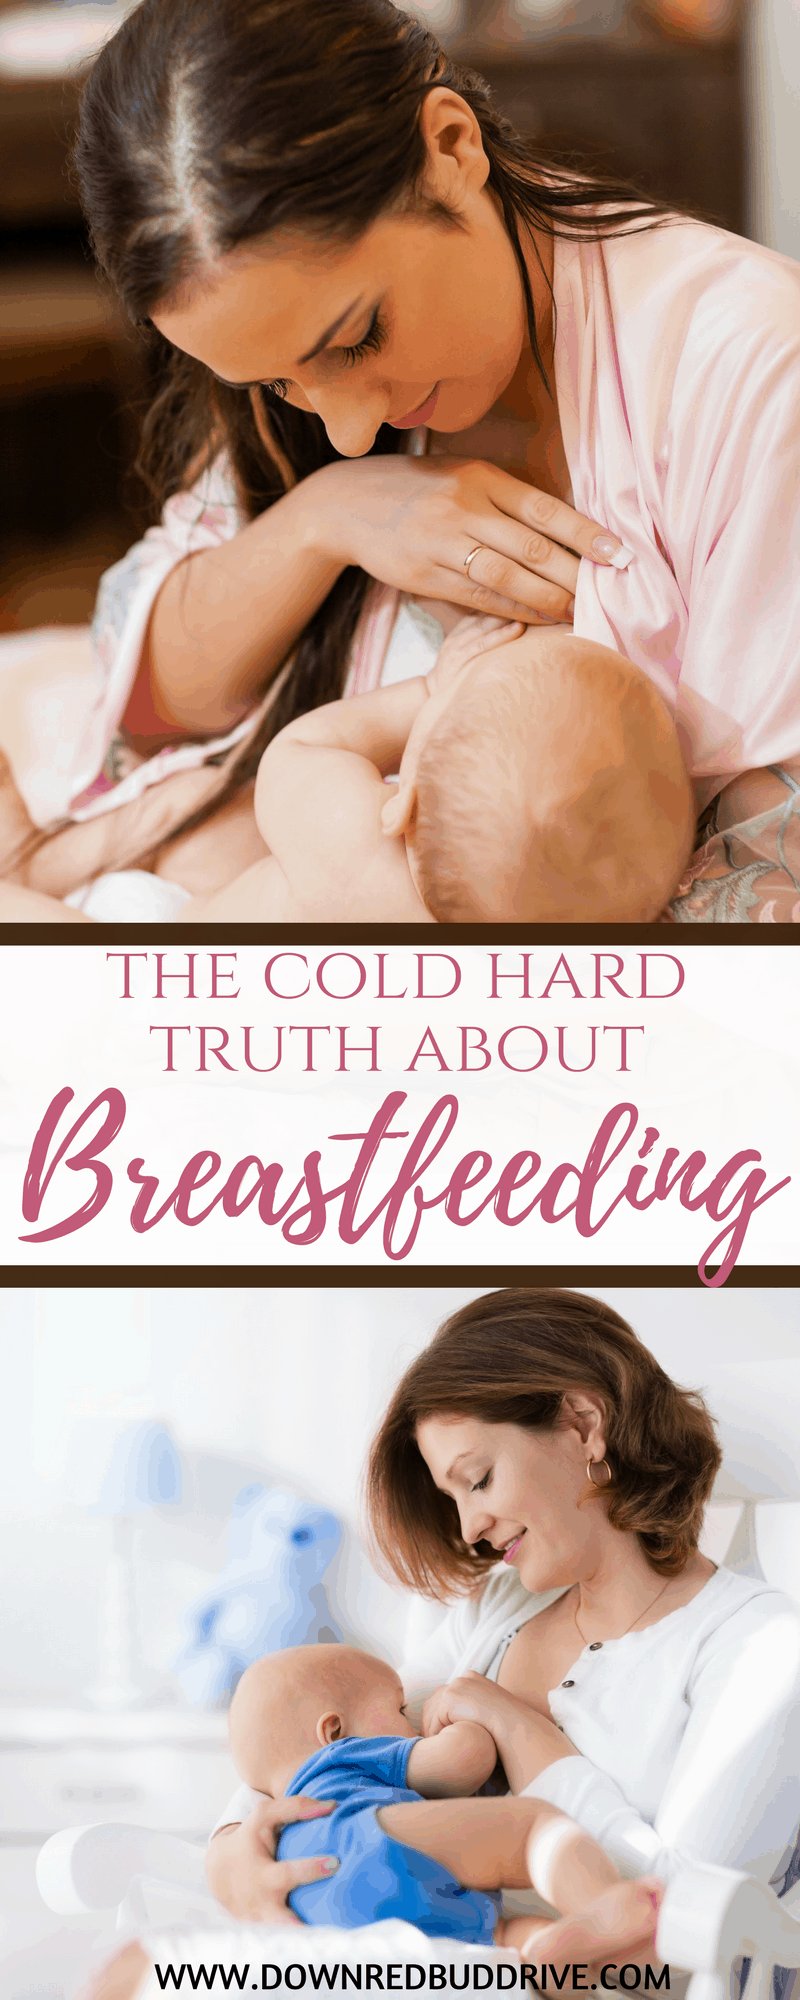 The Cold Hard Truth About Breastfeeding | Nursing Tips | Newborn Feeding | Nursing | Breastfeeding Tips | Breastfeeding | How to Breastfeed | Newborn Care | Down Redbud Drive #breastfeeding #newborns #newbornfeeding